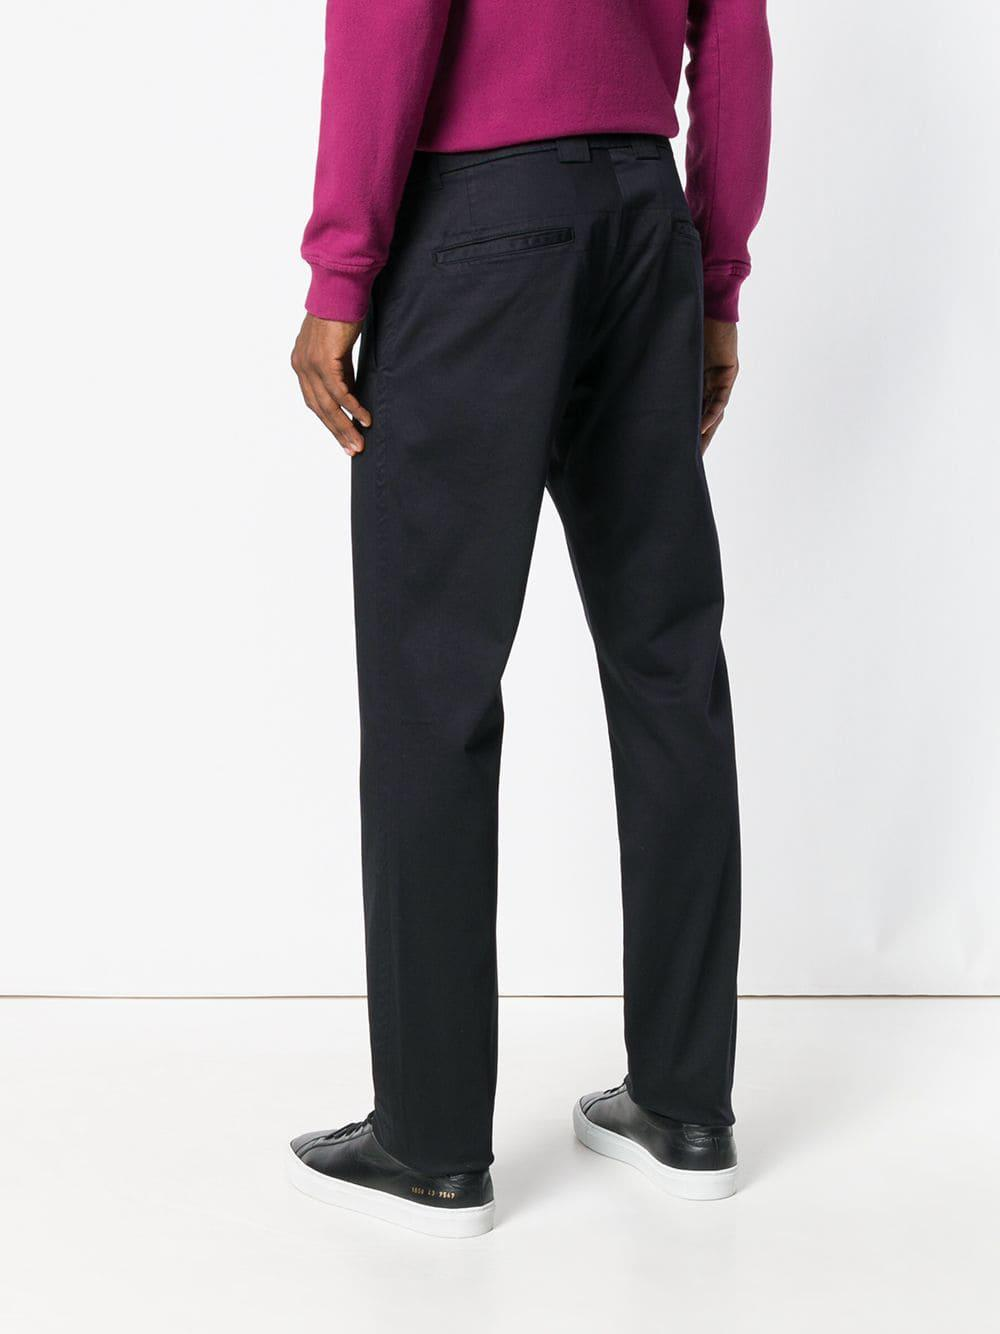 C P Company Cotton Basic Chino Trousers in Black for Men